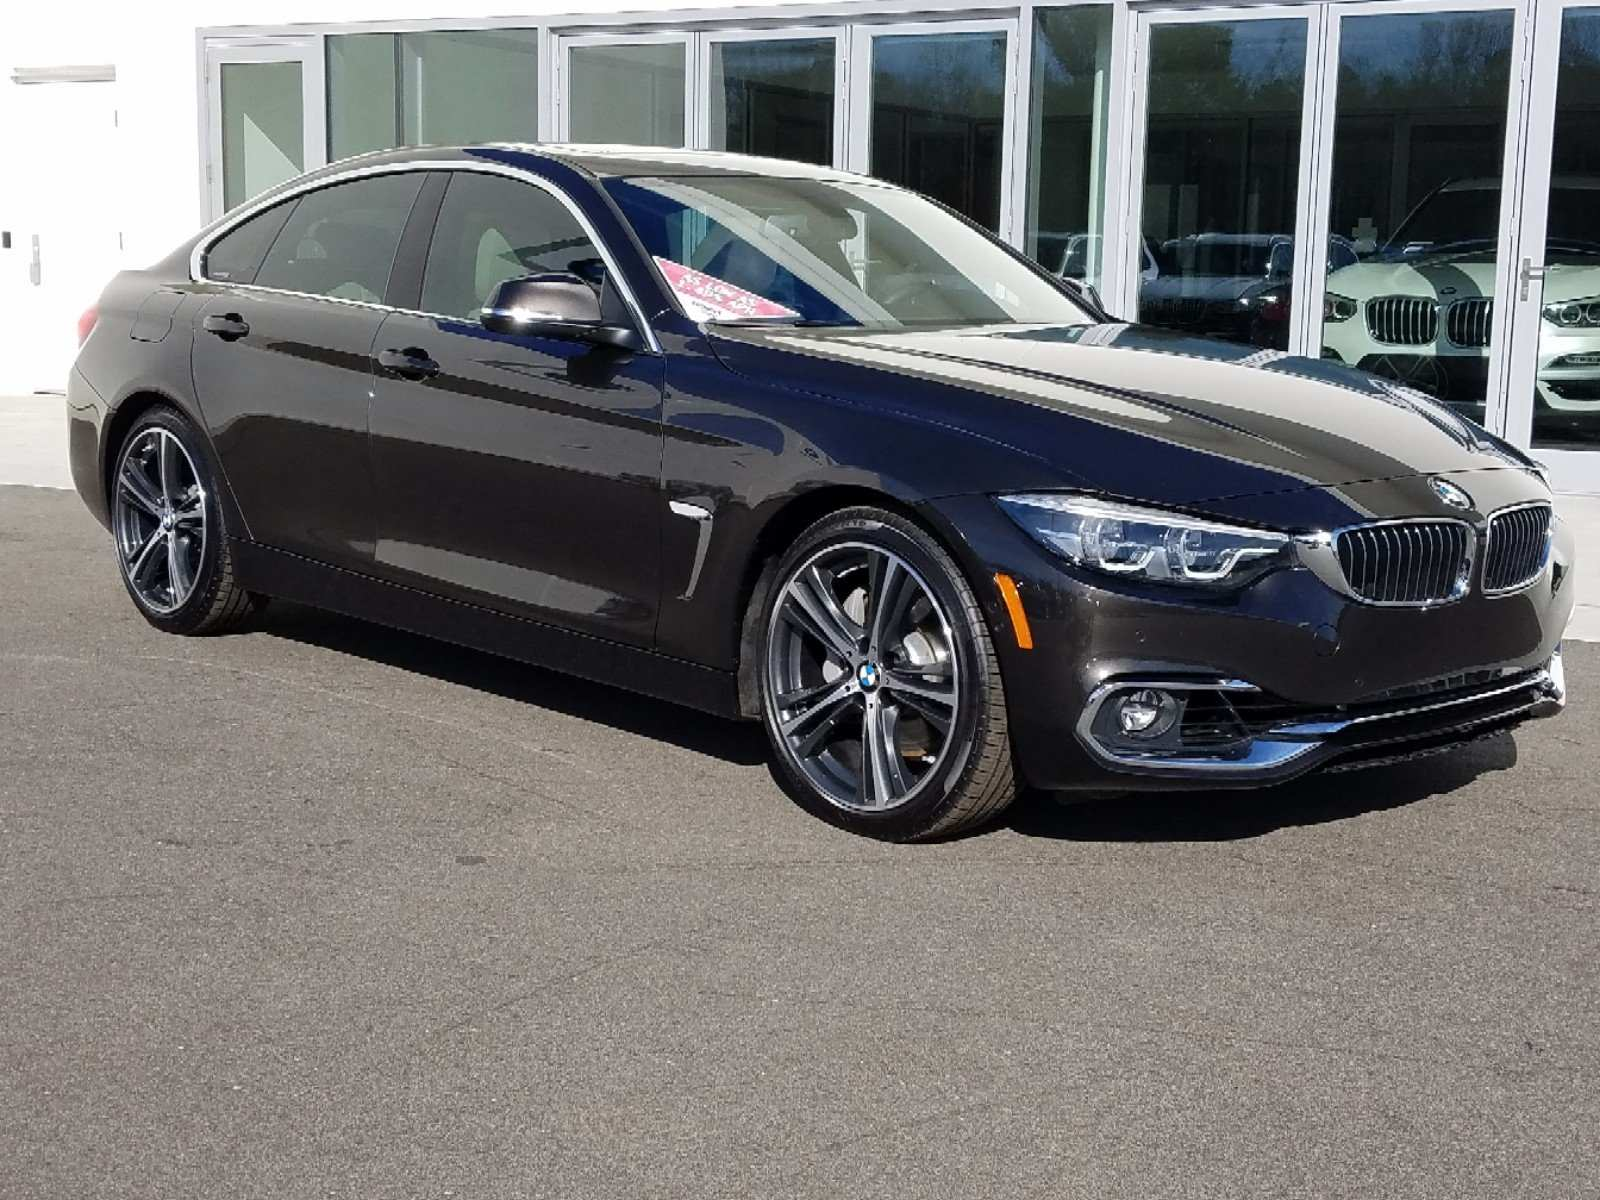 35 Great 2019 Bmw Sedan Performance with 2019 Bmw Sedan